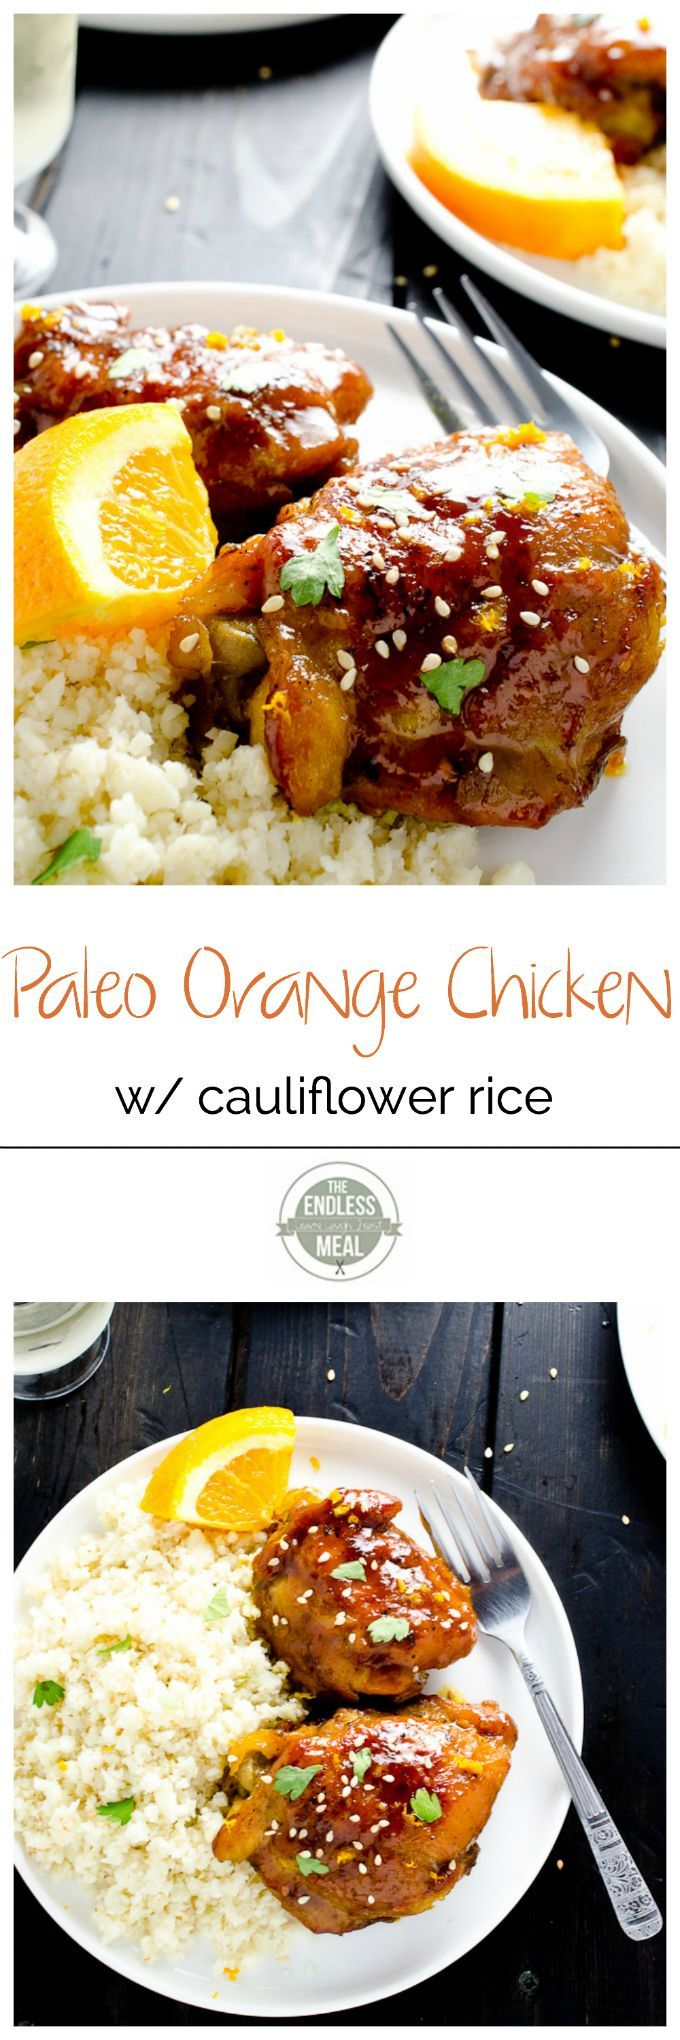 Orange Chicken with Cauliflower Rice by The Endless Meal. #paleo